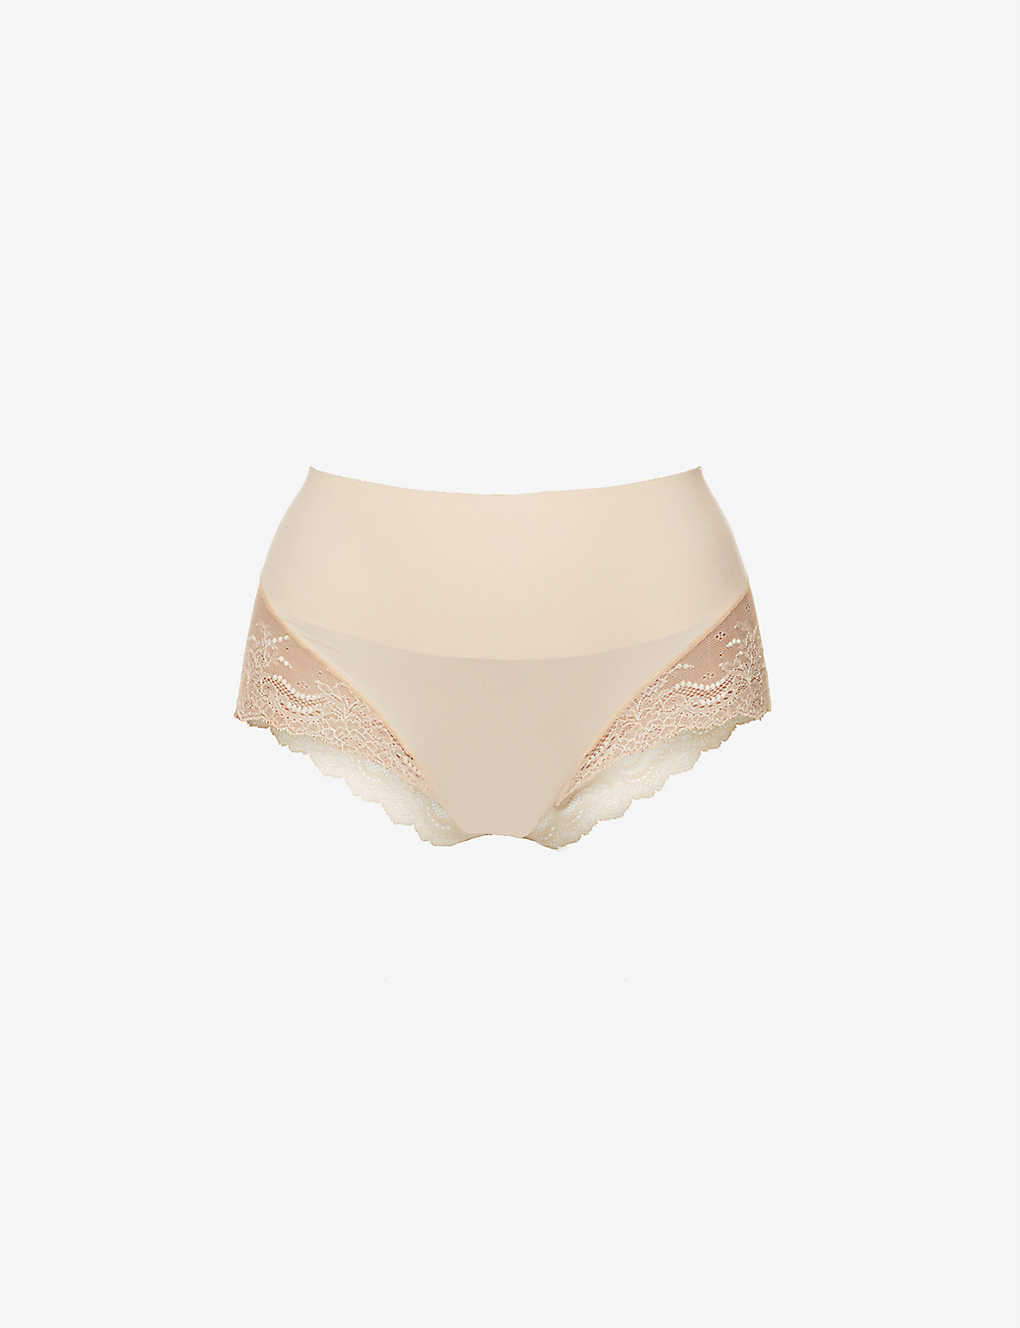 f930c9faaea6 SPANX - Undie-tectable floral-lace hipster briefs | Selfridges.com